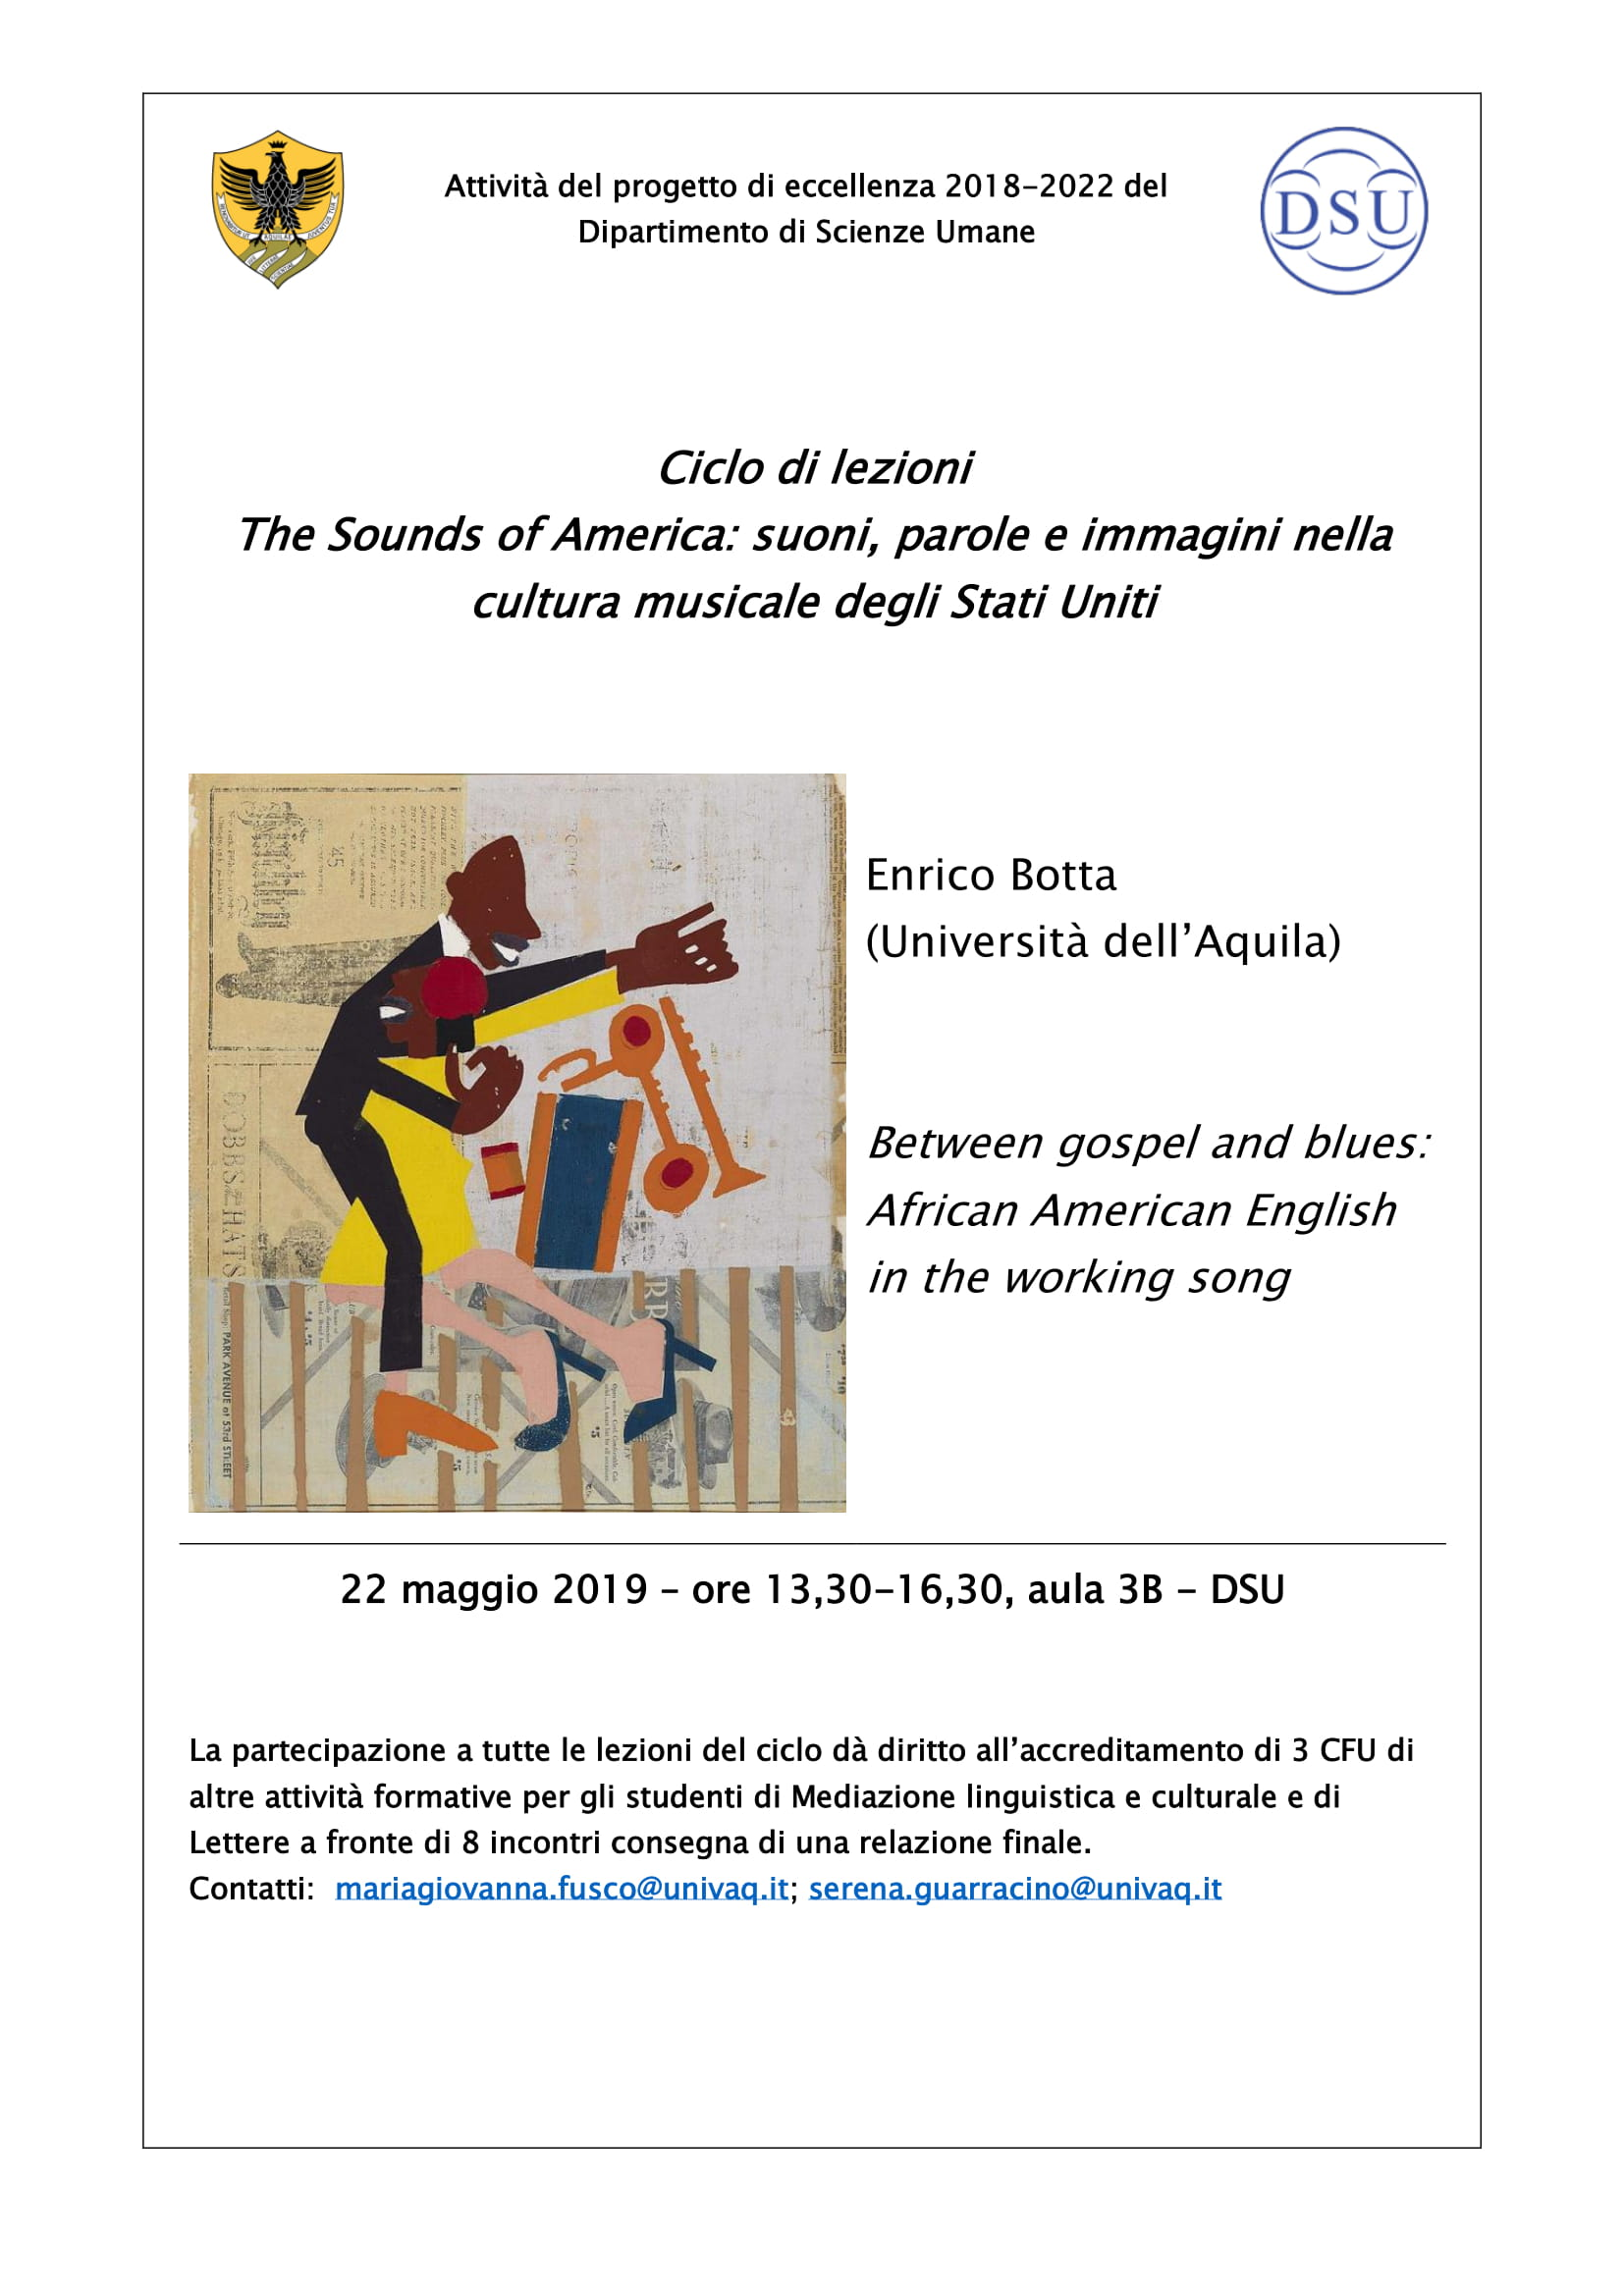 Convegno The sounds of America: between gospel and blues